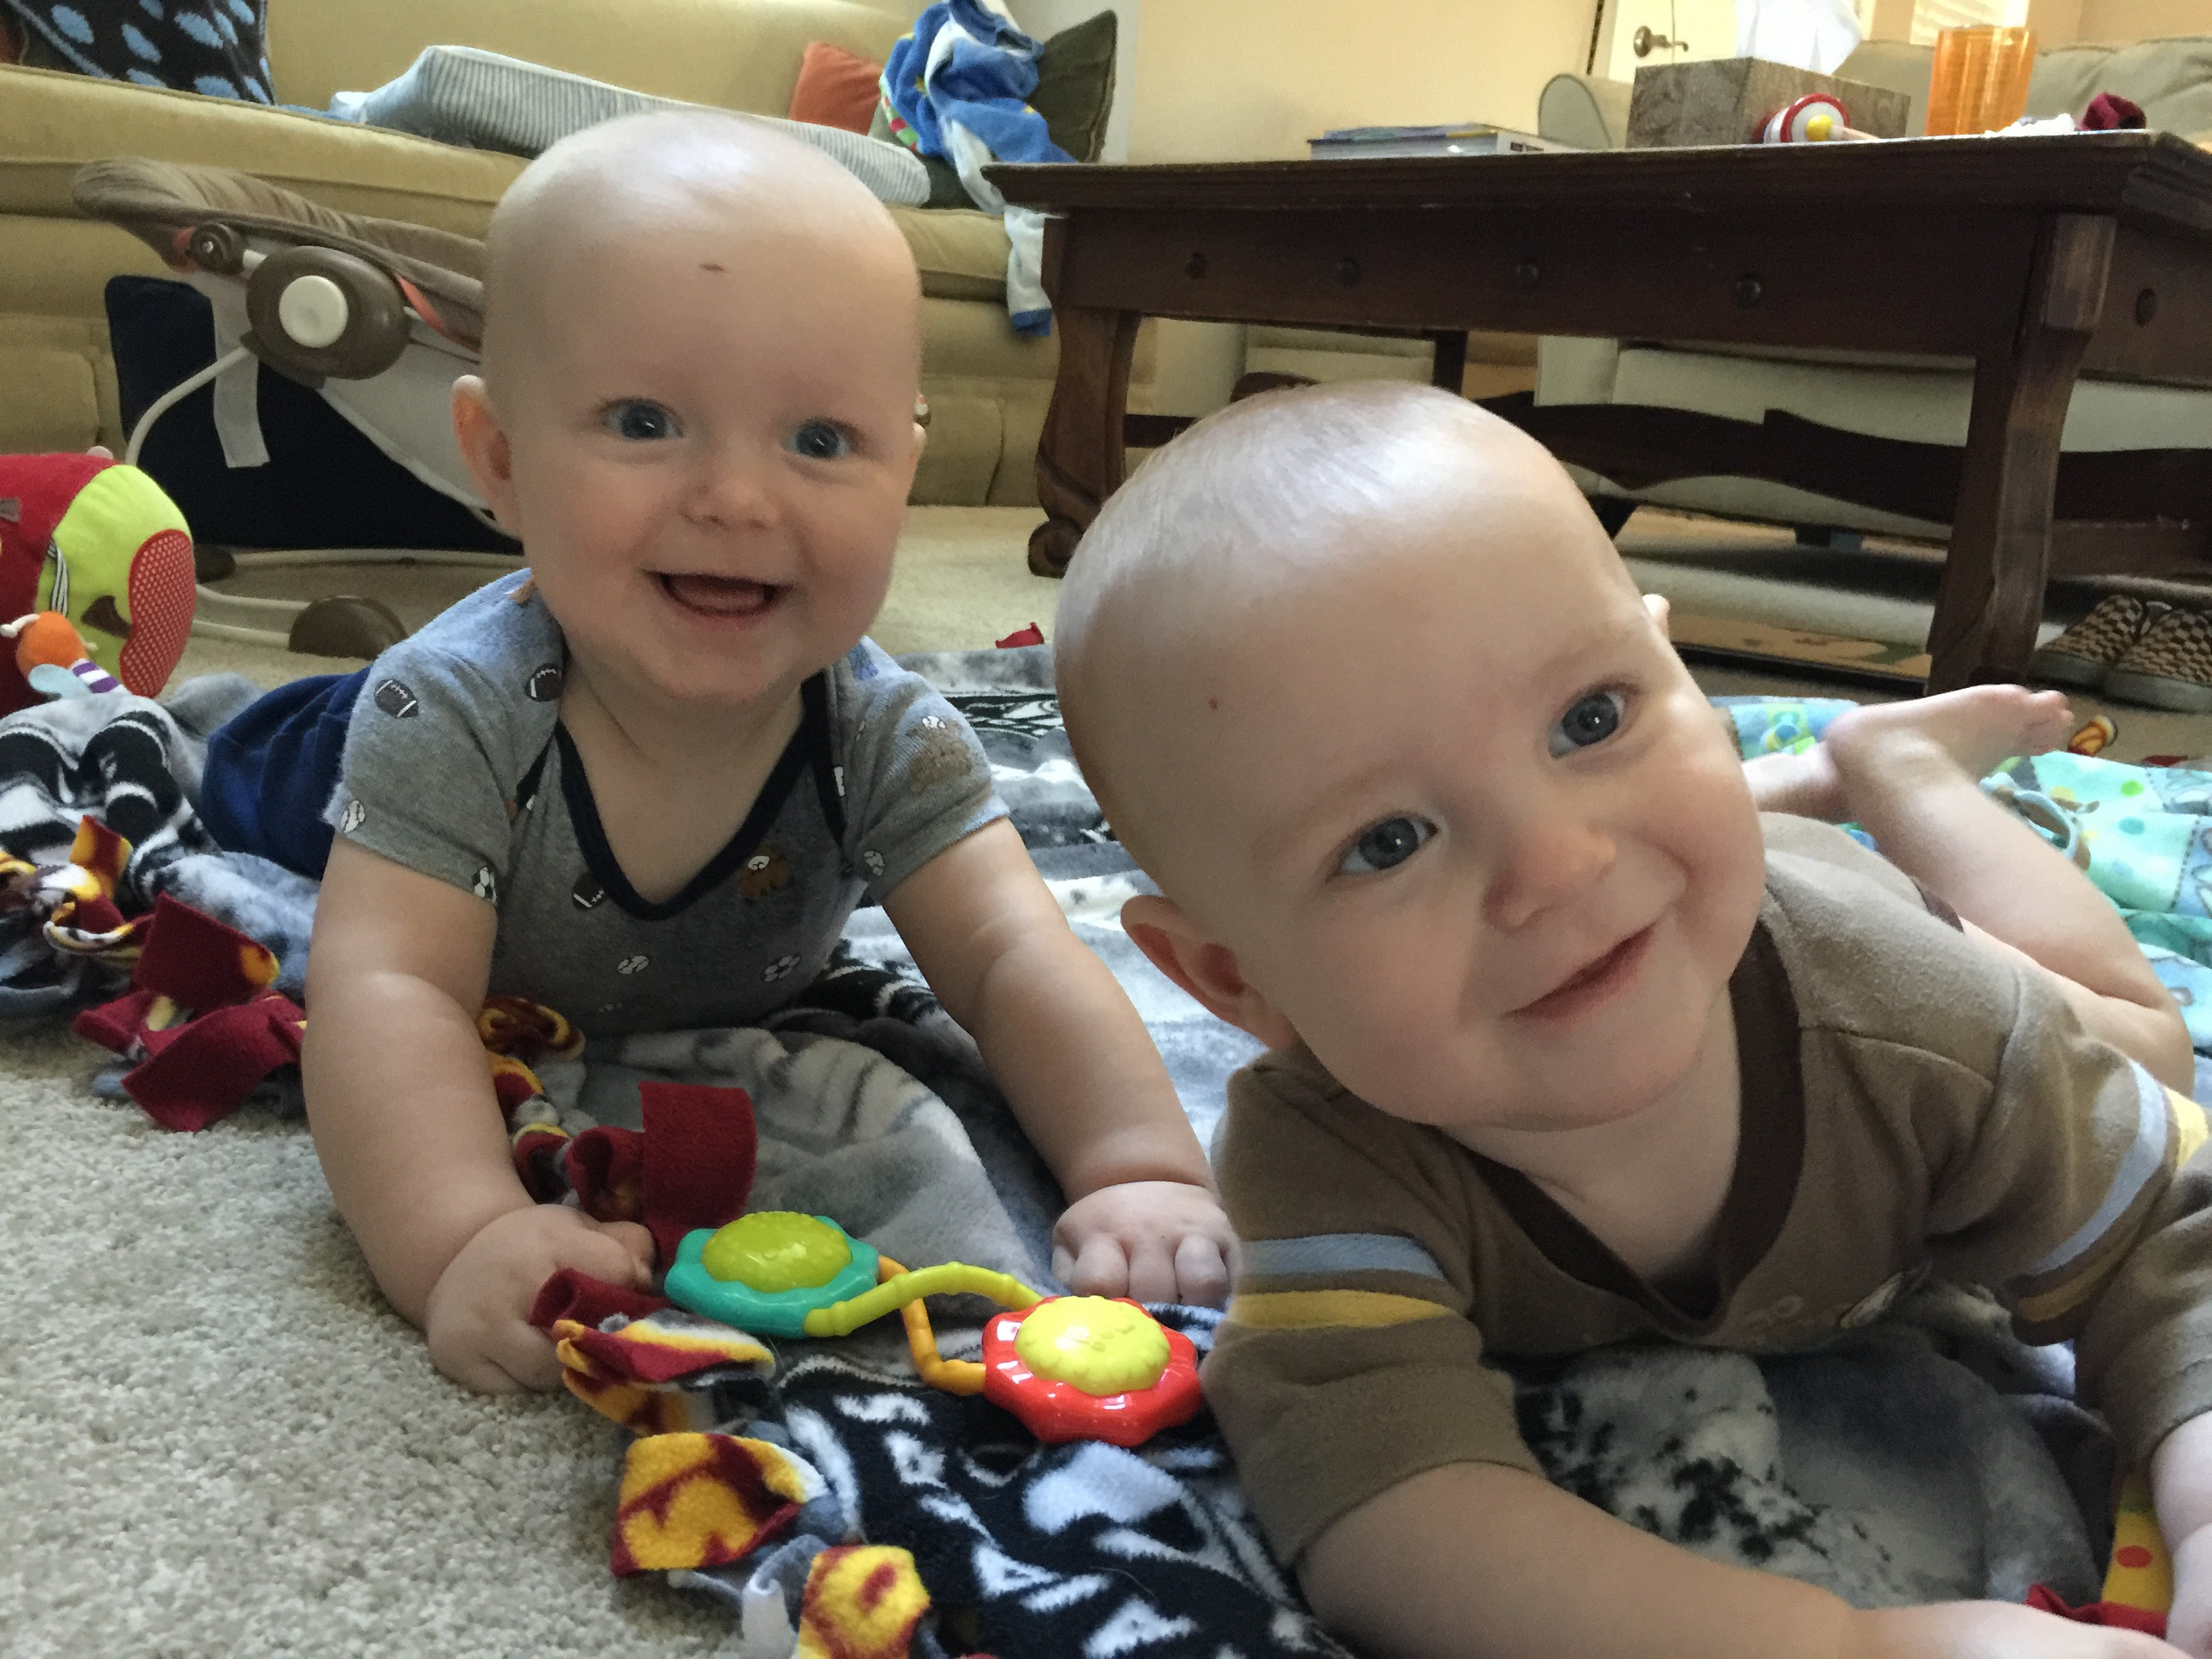 Twins born holding hands are now 2years old and closer than ever